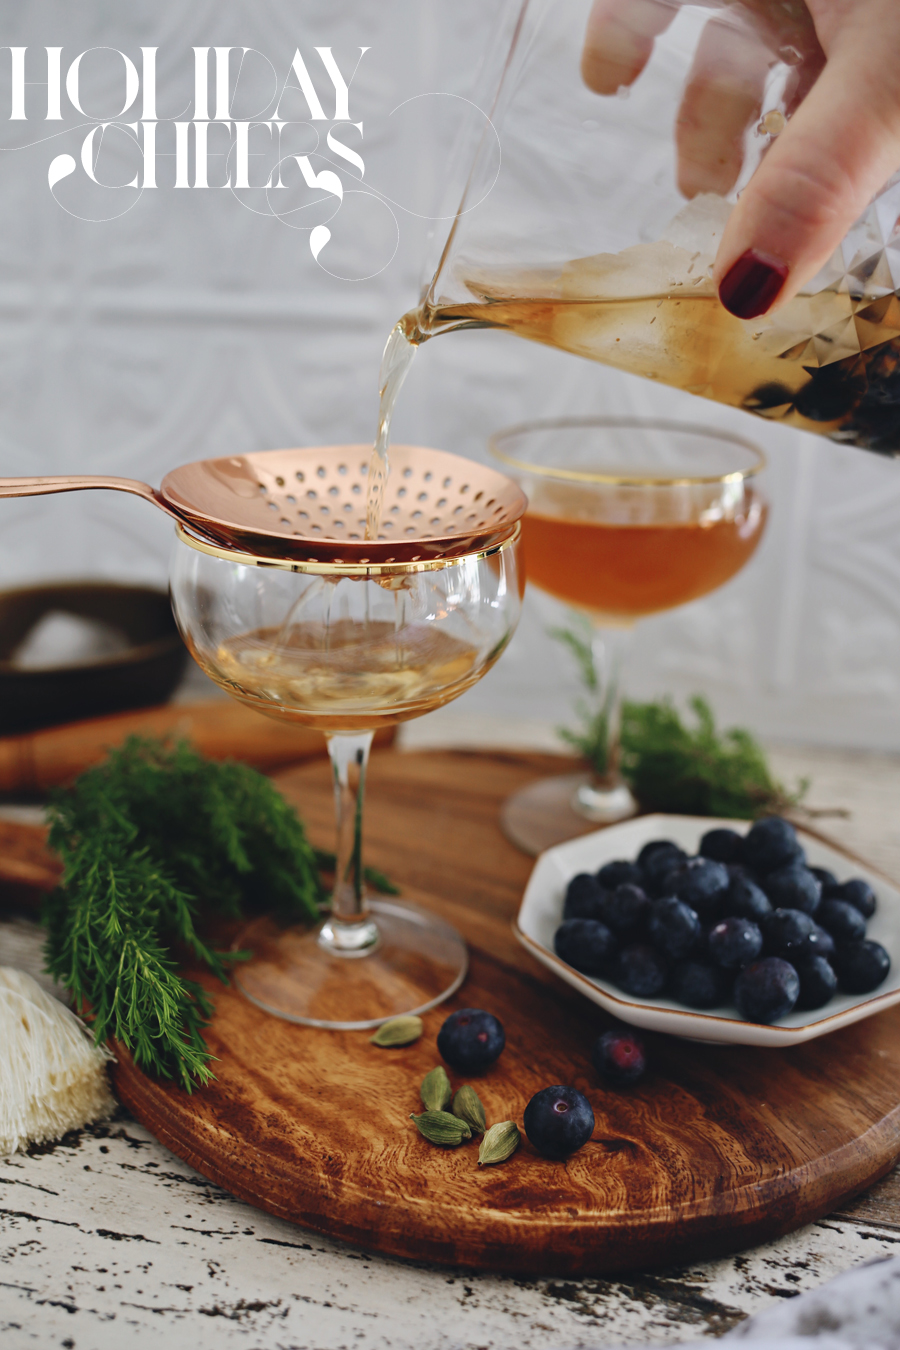 10-holiday-cocktails-for-entertaining-dine-x-design